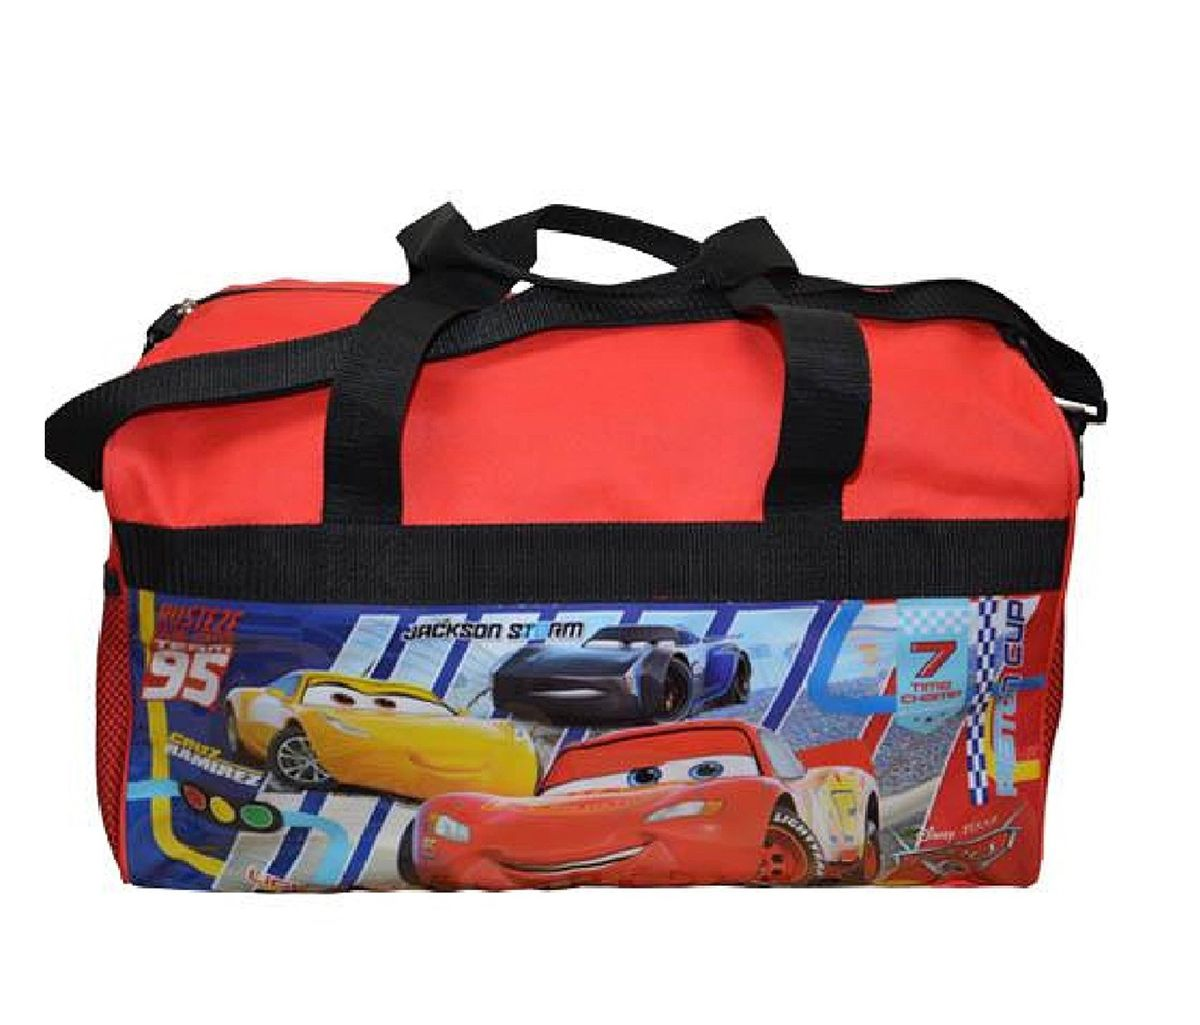 Mozlly Disney Pixar Cars Duffle Bag (Multipack of 3) Novelty Character Travel Accessories by United Pacific Design